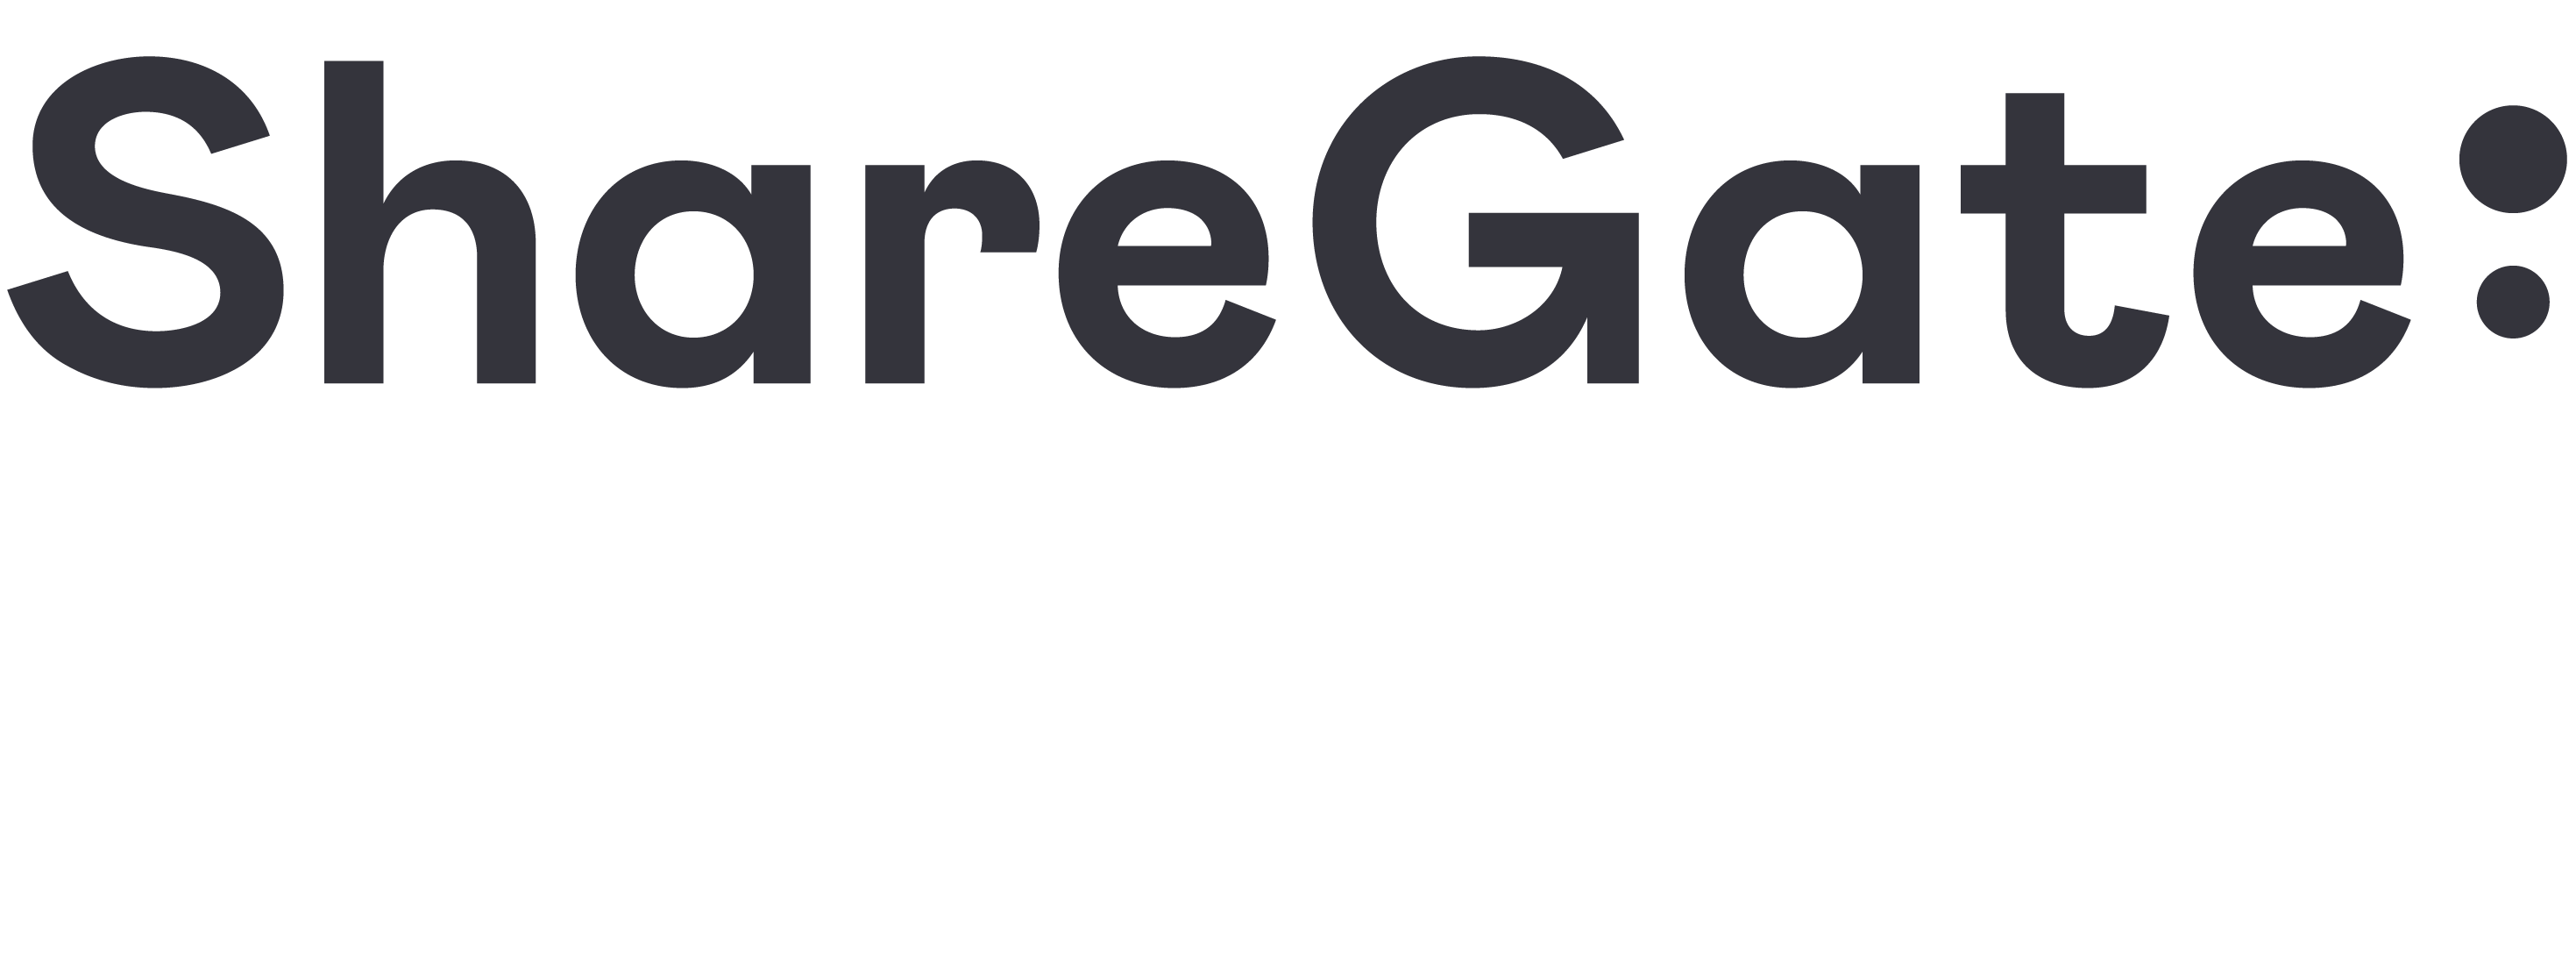 Sharegate_Logo_Desktop_long_RGB-nb